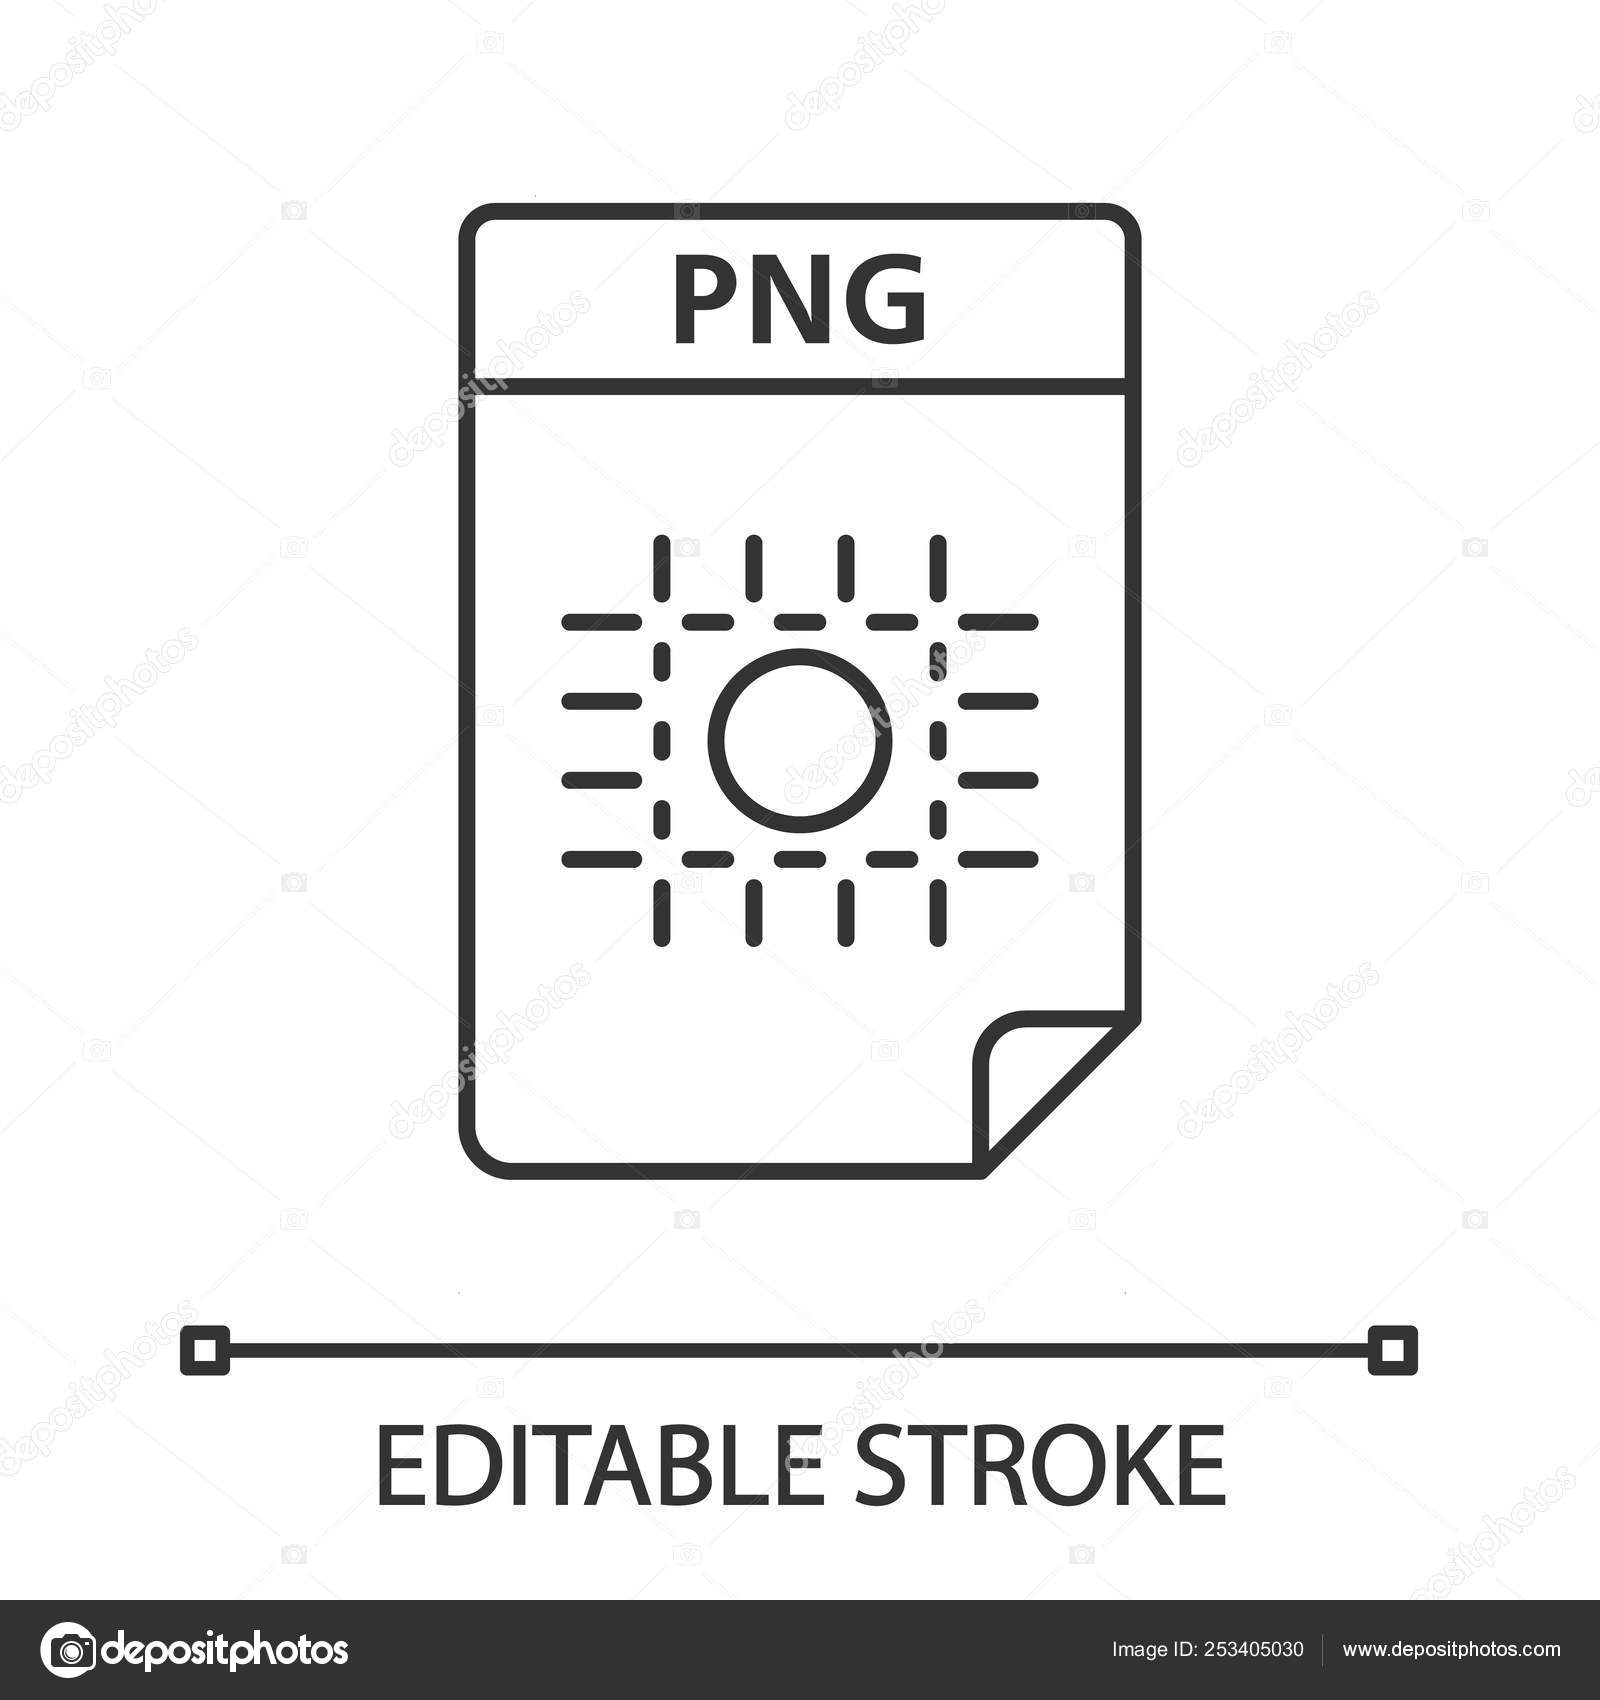 Png File Linear Icon Image File Format Raster Graphic Document.